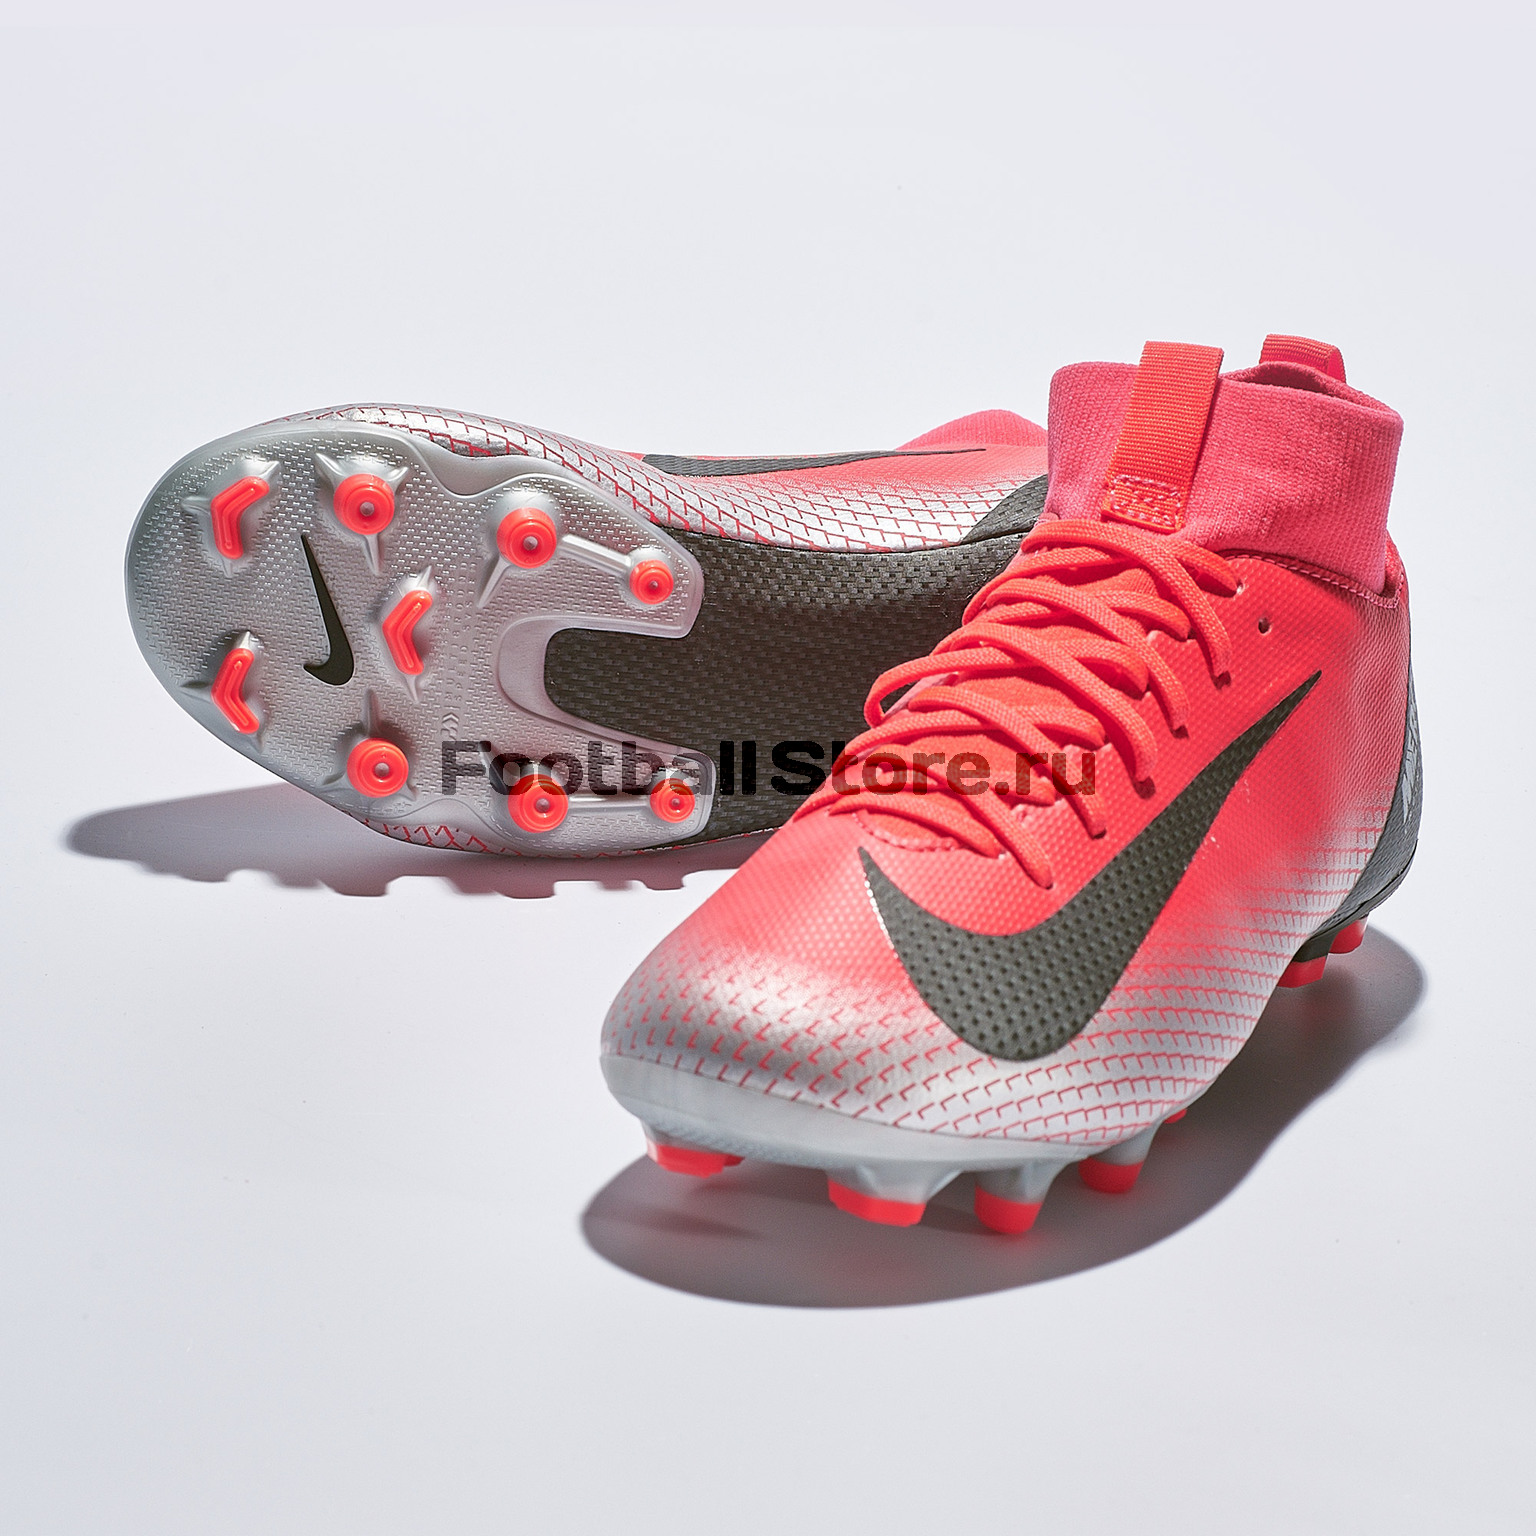 Бутсы детские Nike Superfly Academy GS CR7 FG/MG AJ3111-600 бутсы nike mercurial victory iii fg 509128 800